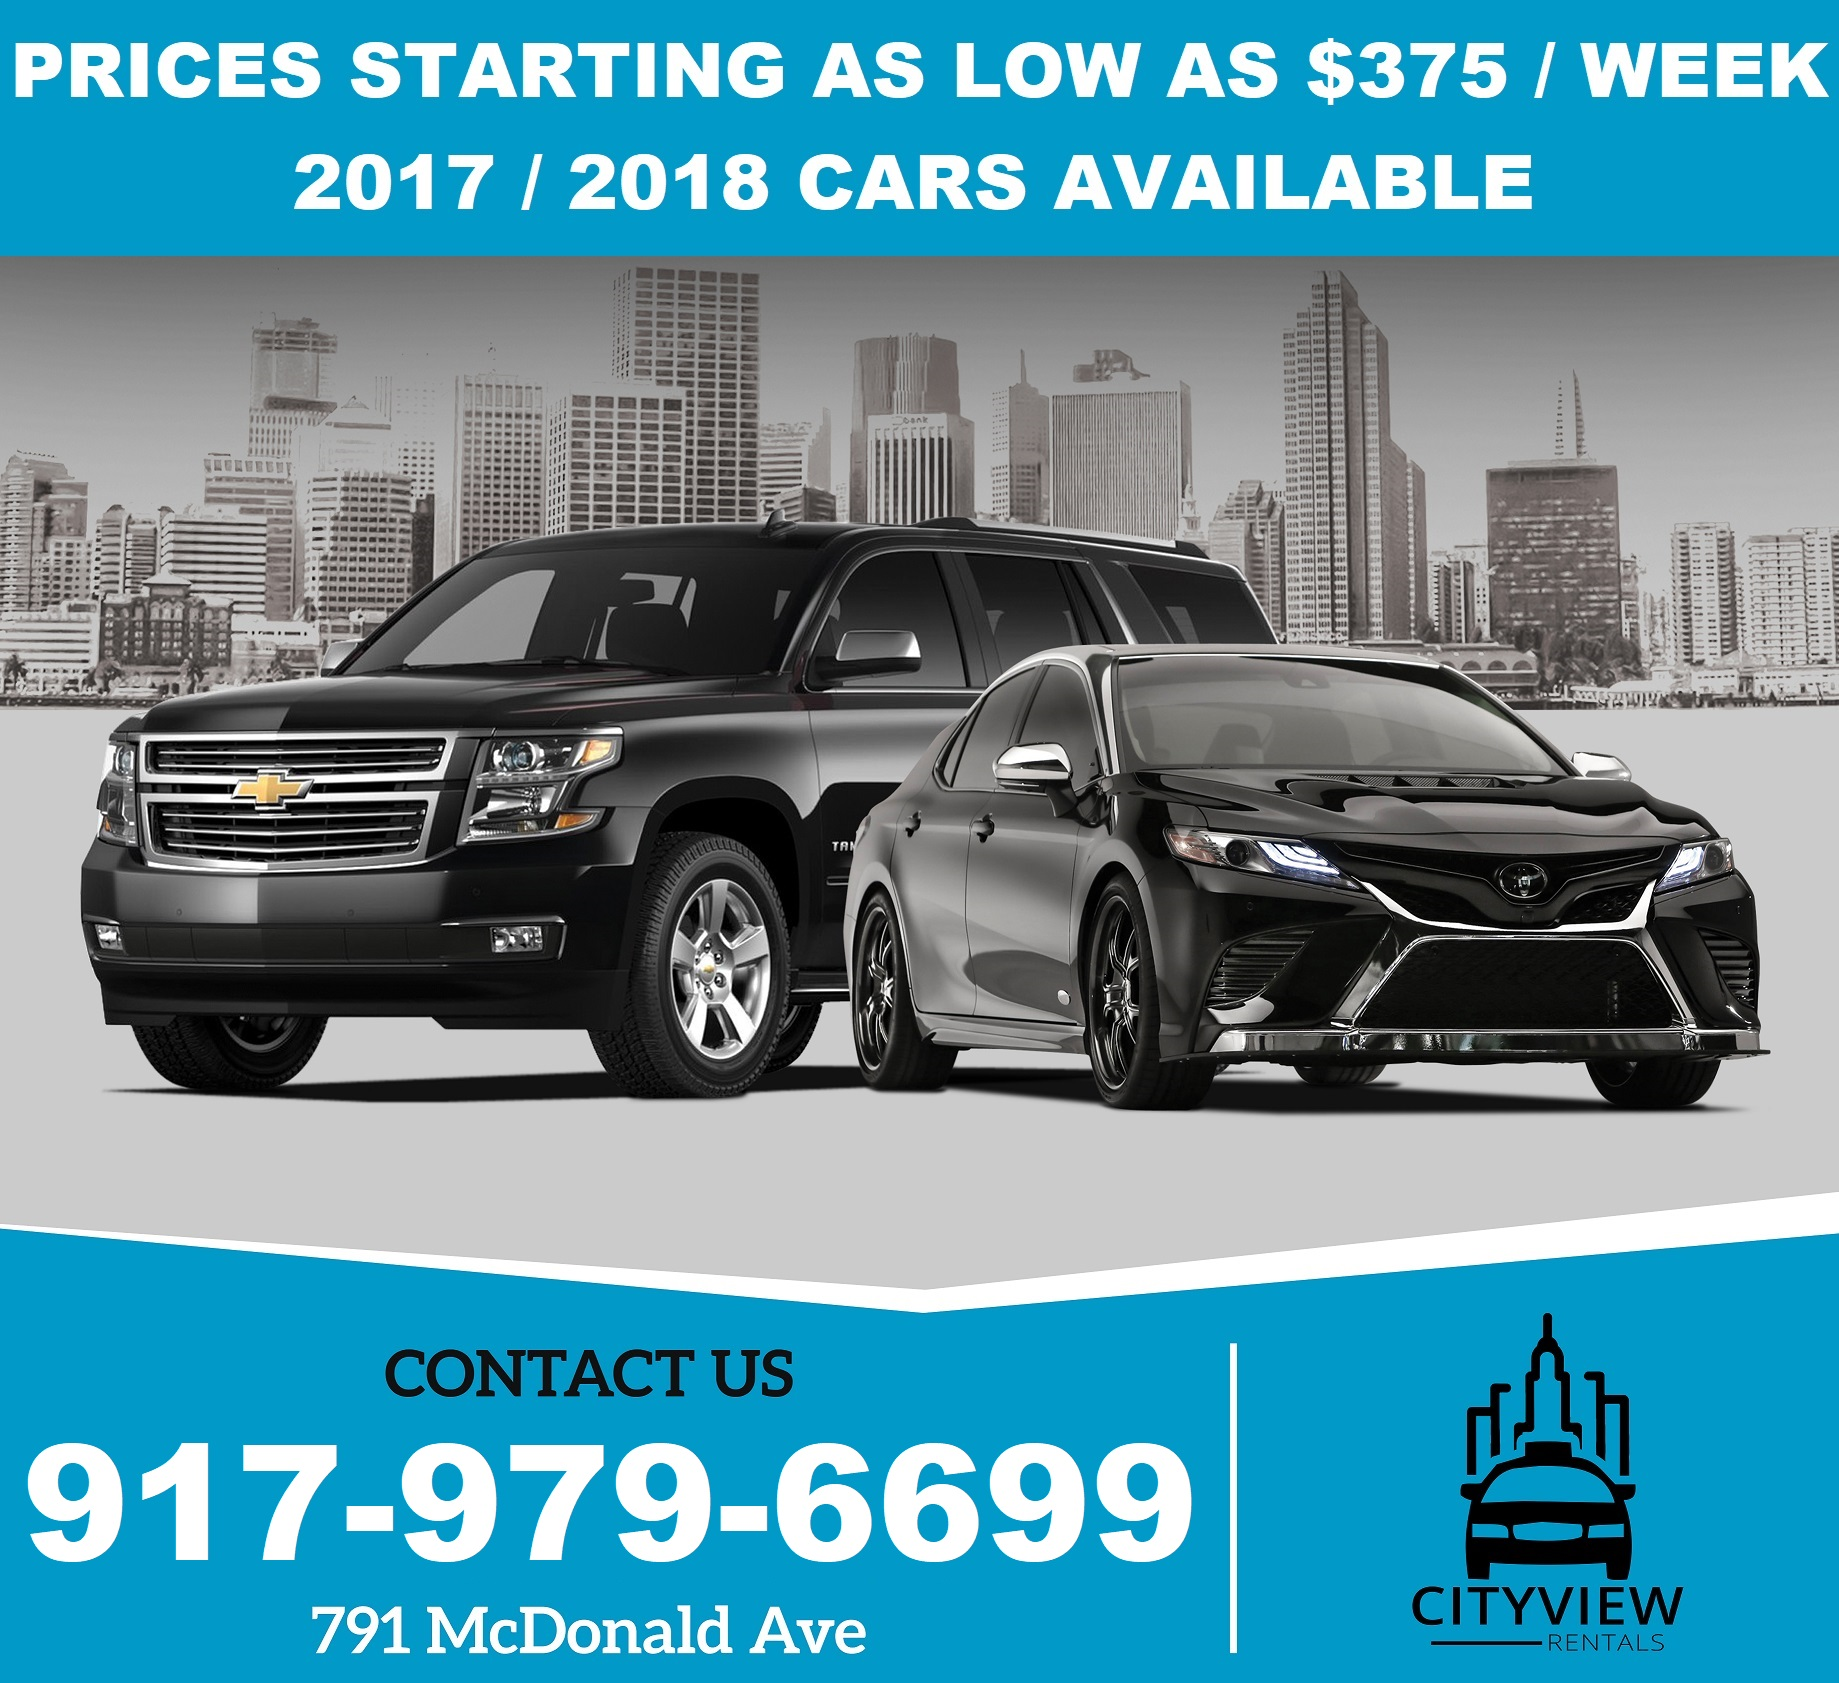 UBER and LYFT TLC Cars Available NOW - $375 (791 McDonald Ave)